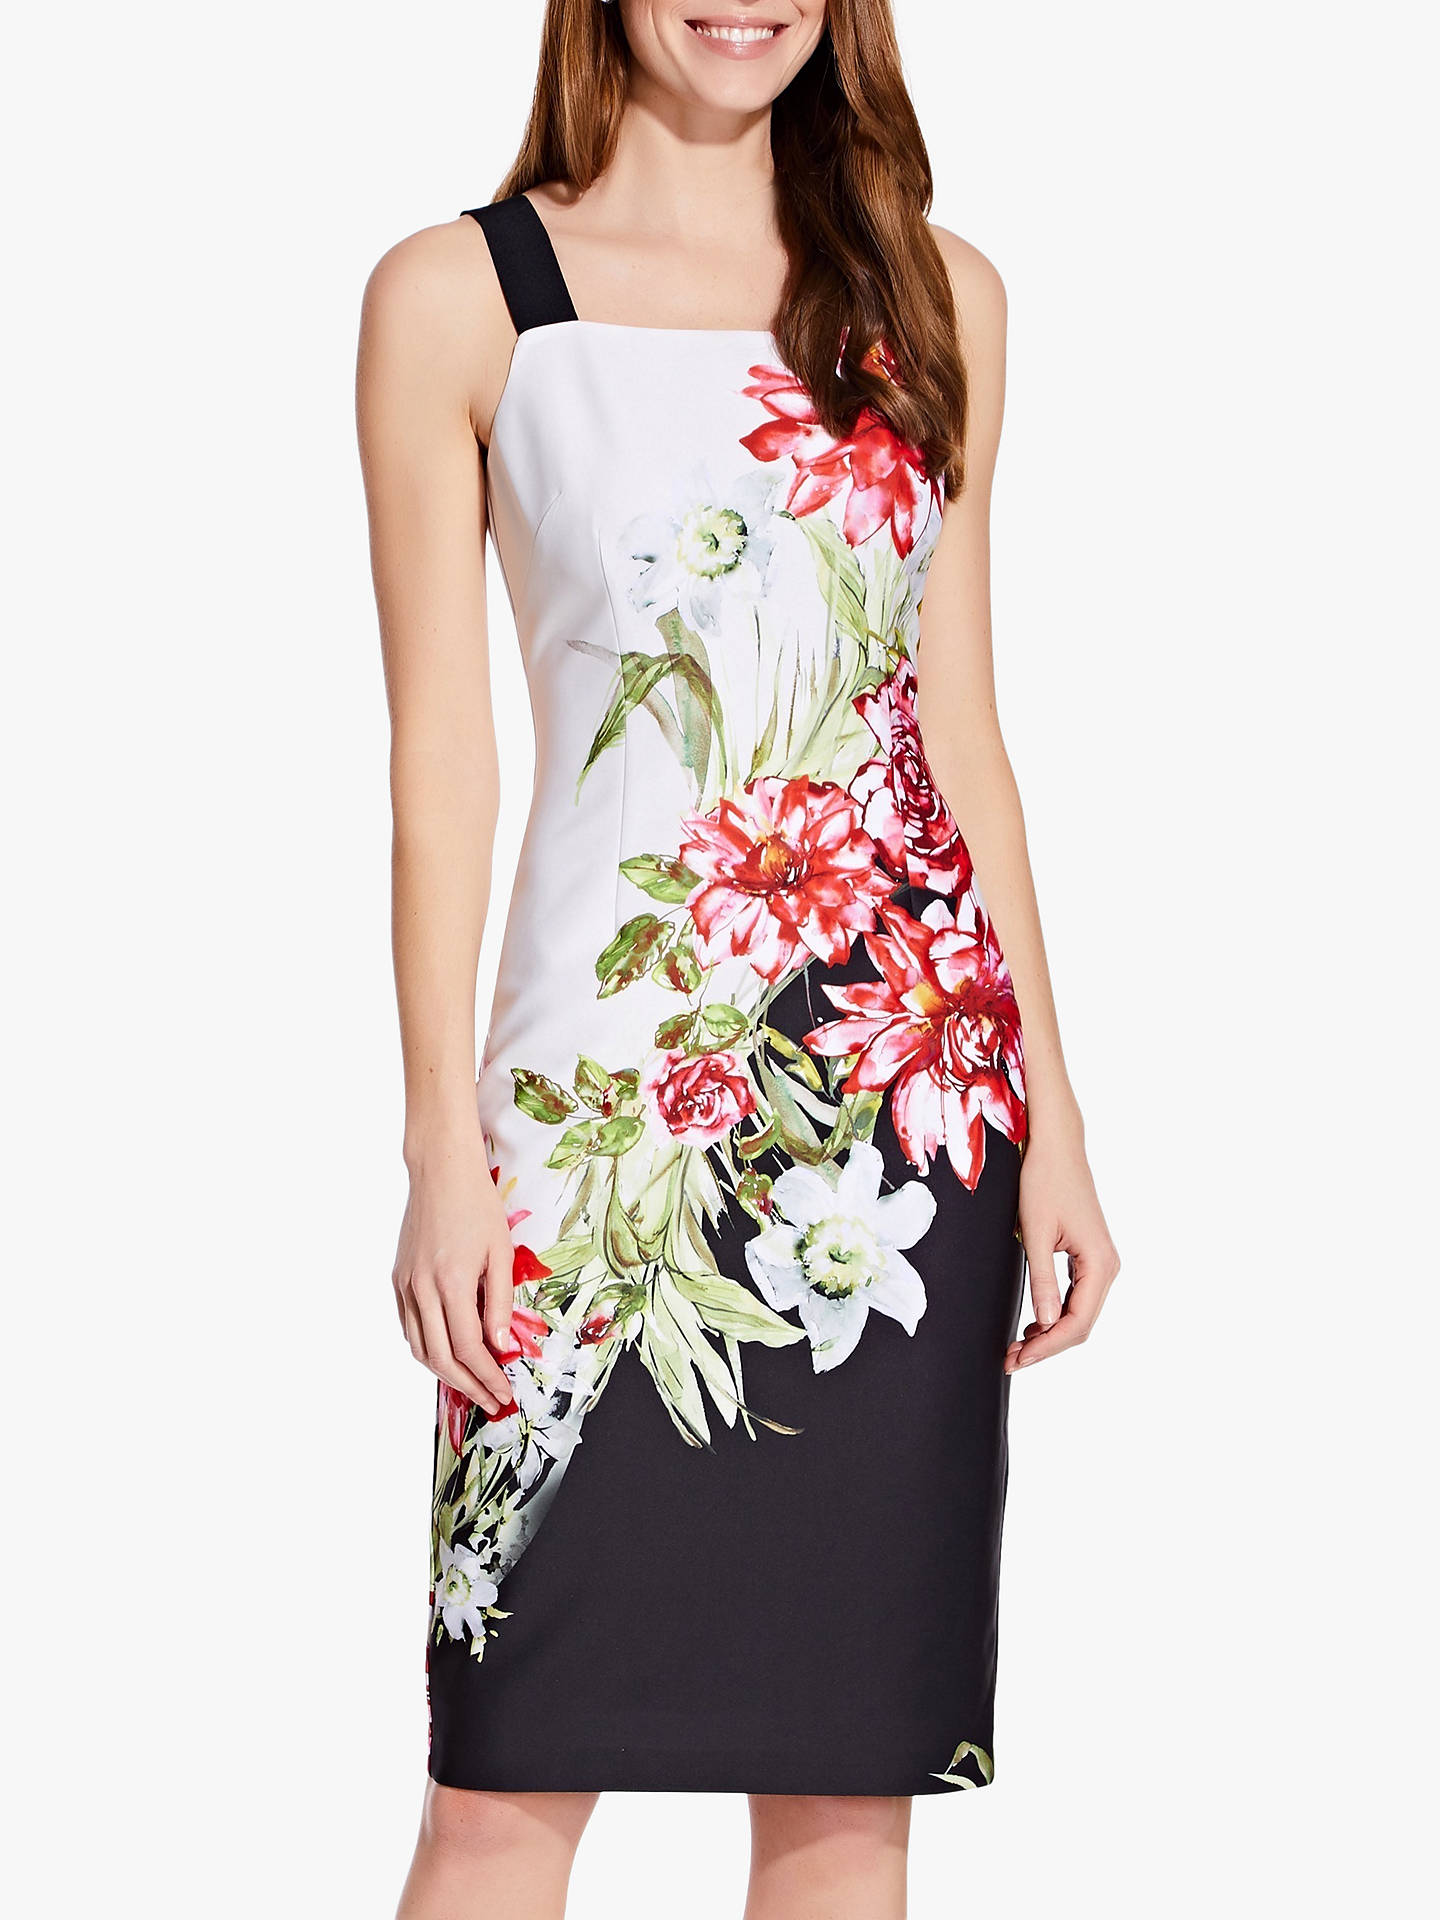 b4e64b0c102c Buy Adrianna Papell Scuba Floral Print Sheath Dress, Multi, 16 Online at  johnlewis.